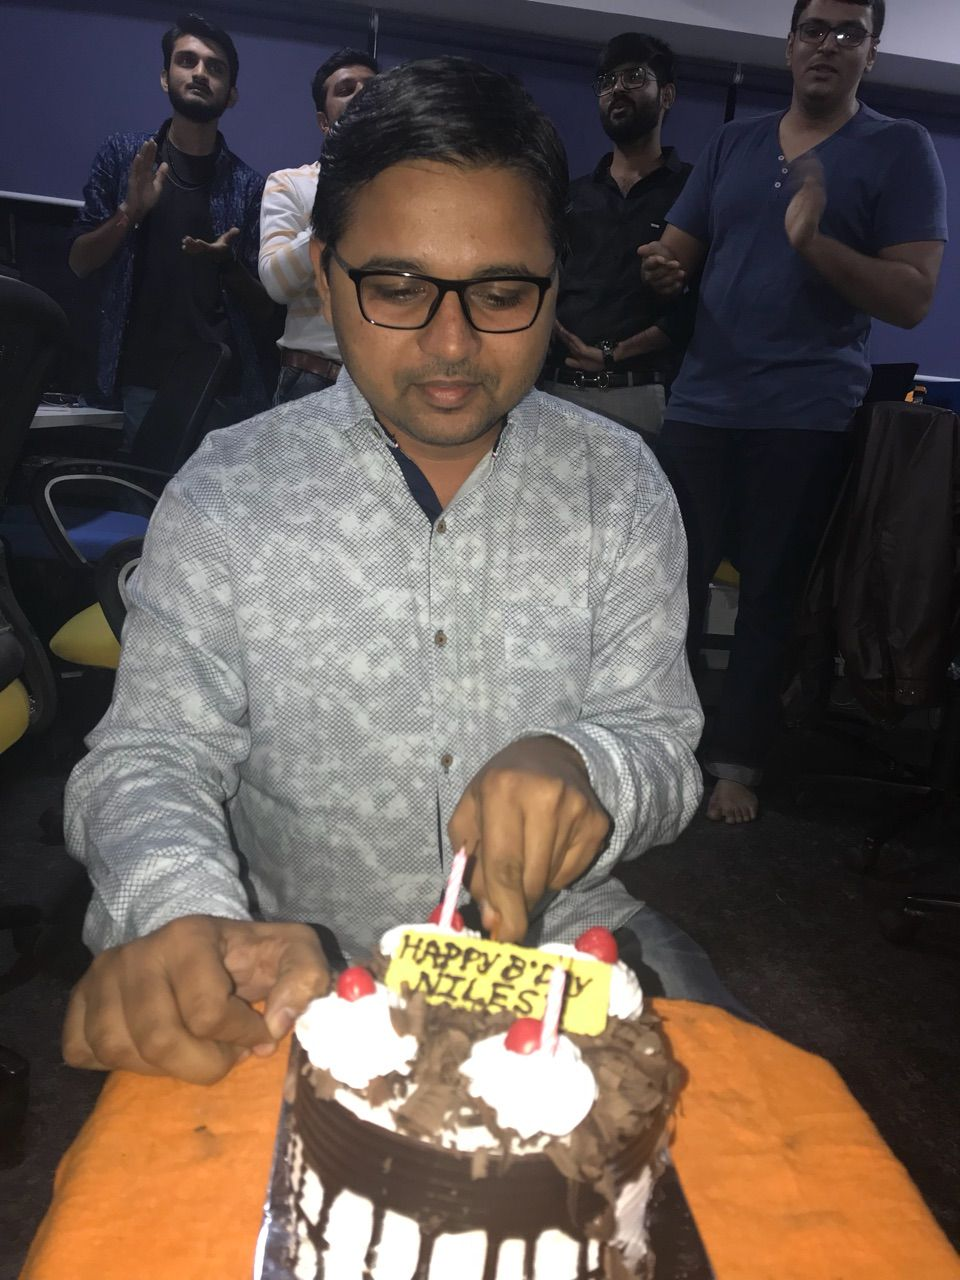 Wishing A Very Happy Birthday To Our Android Developer Nilesh